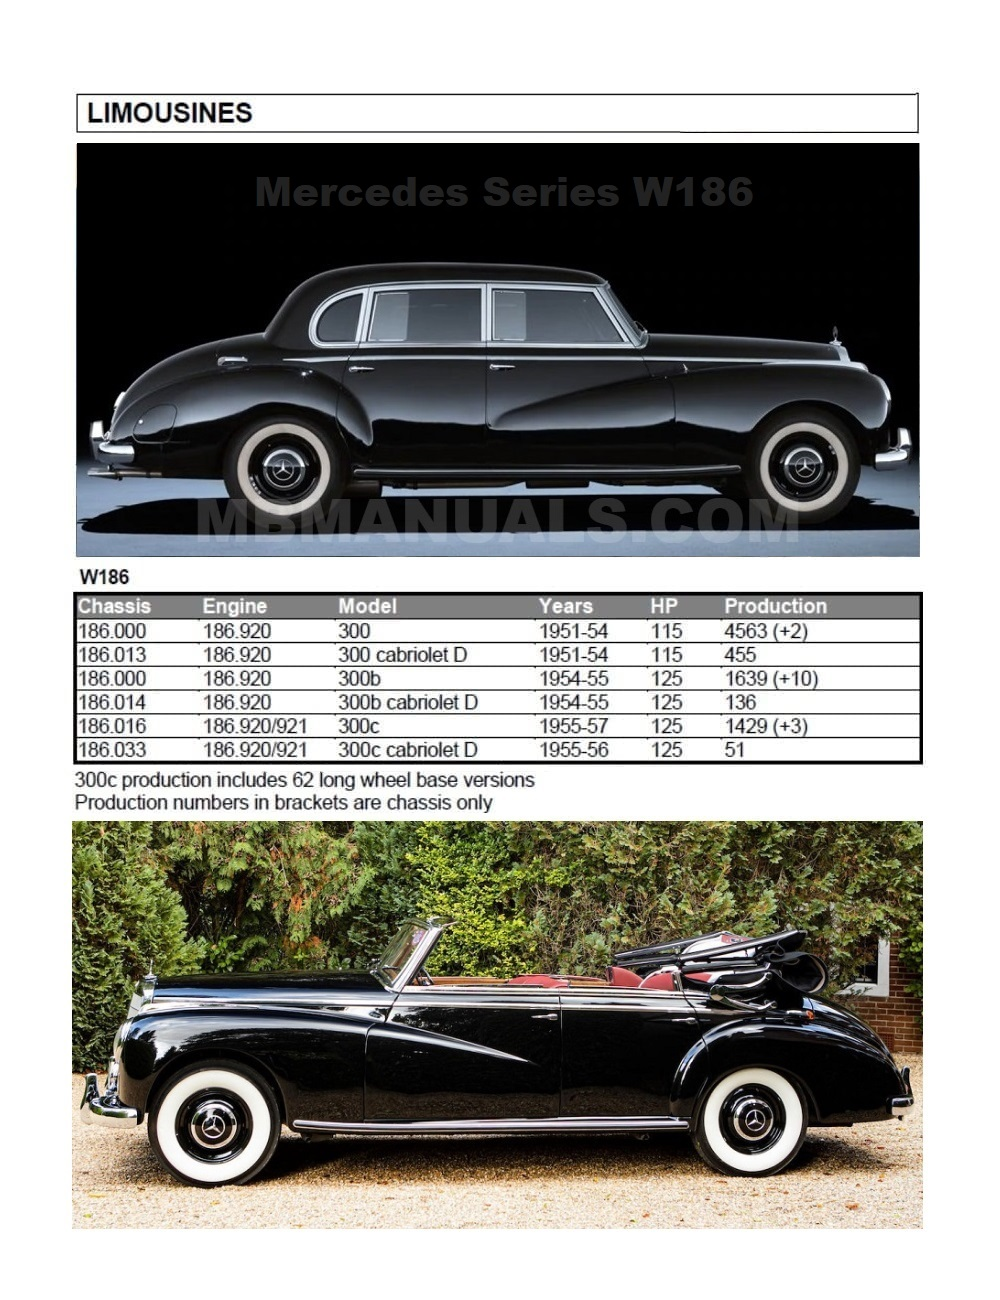 Mercedes Benz W186 Production Specs Sheet